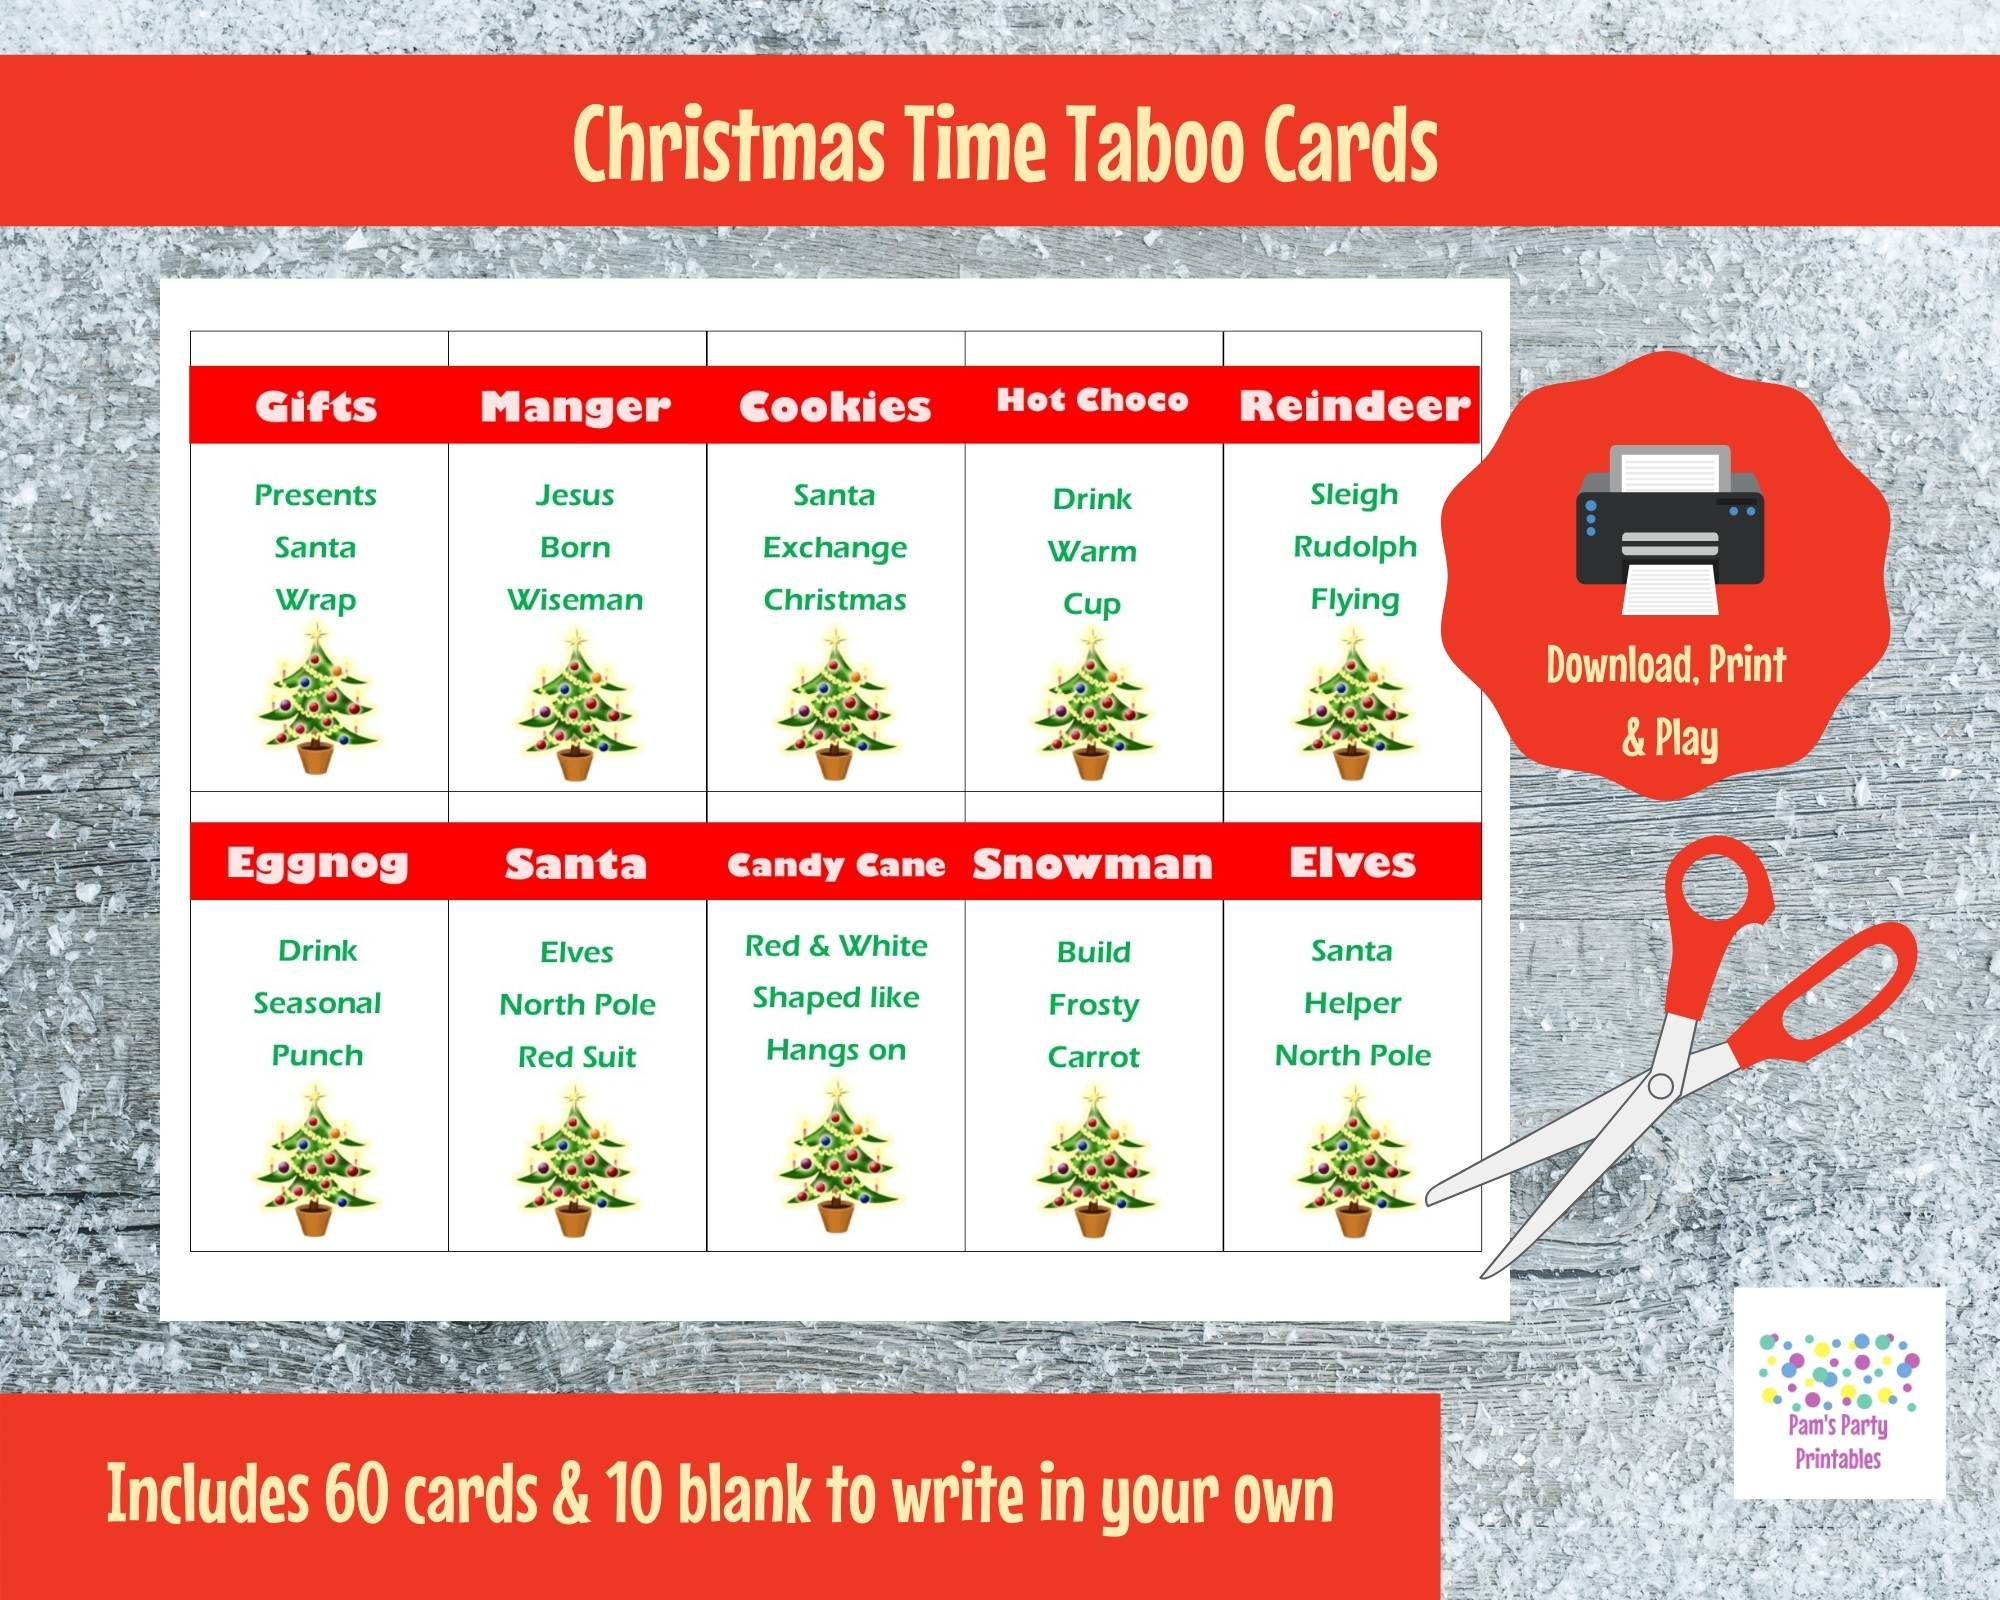 Printable Christmas Game Cards For Taboo Group Game Family Game All Ages Instant Download Pam S Party Place